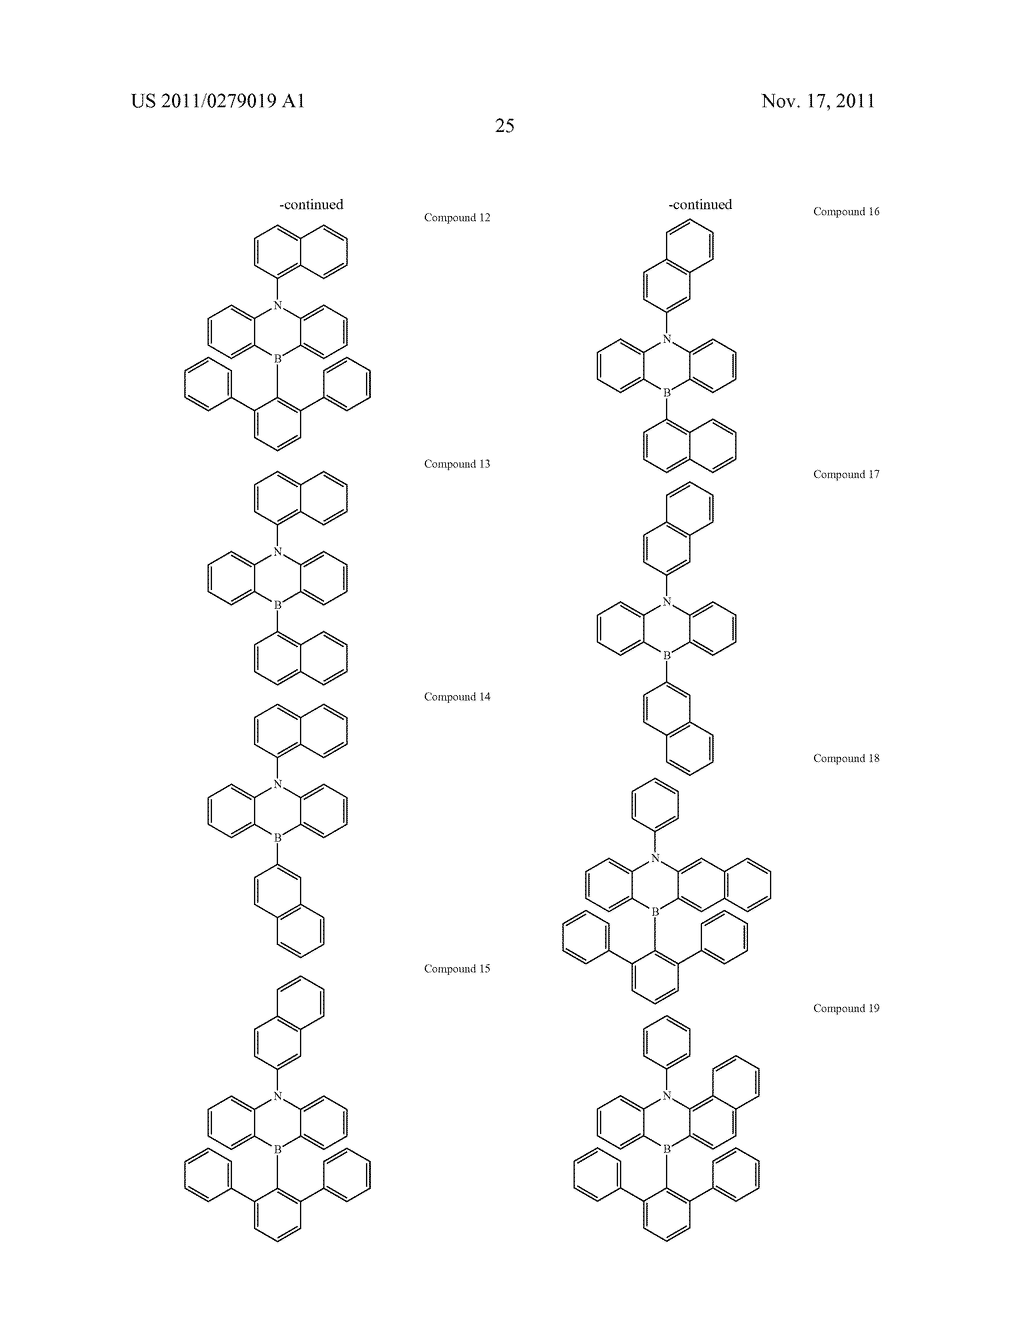 AZABORININE COMPOUNDS AS HOST MATERIALS AND DOPANTS FOR PHOLEDS - diagram, schematic, and image 32